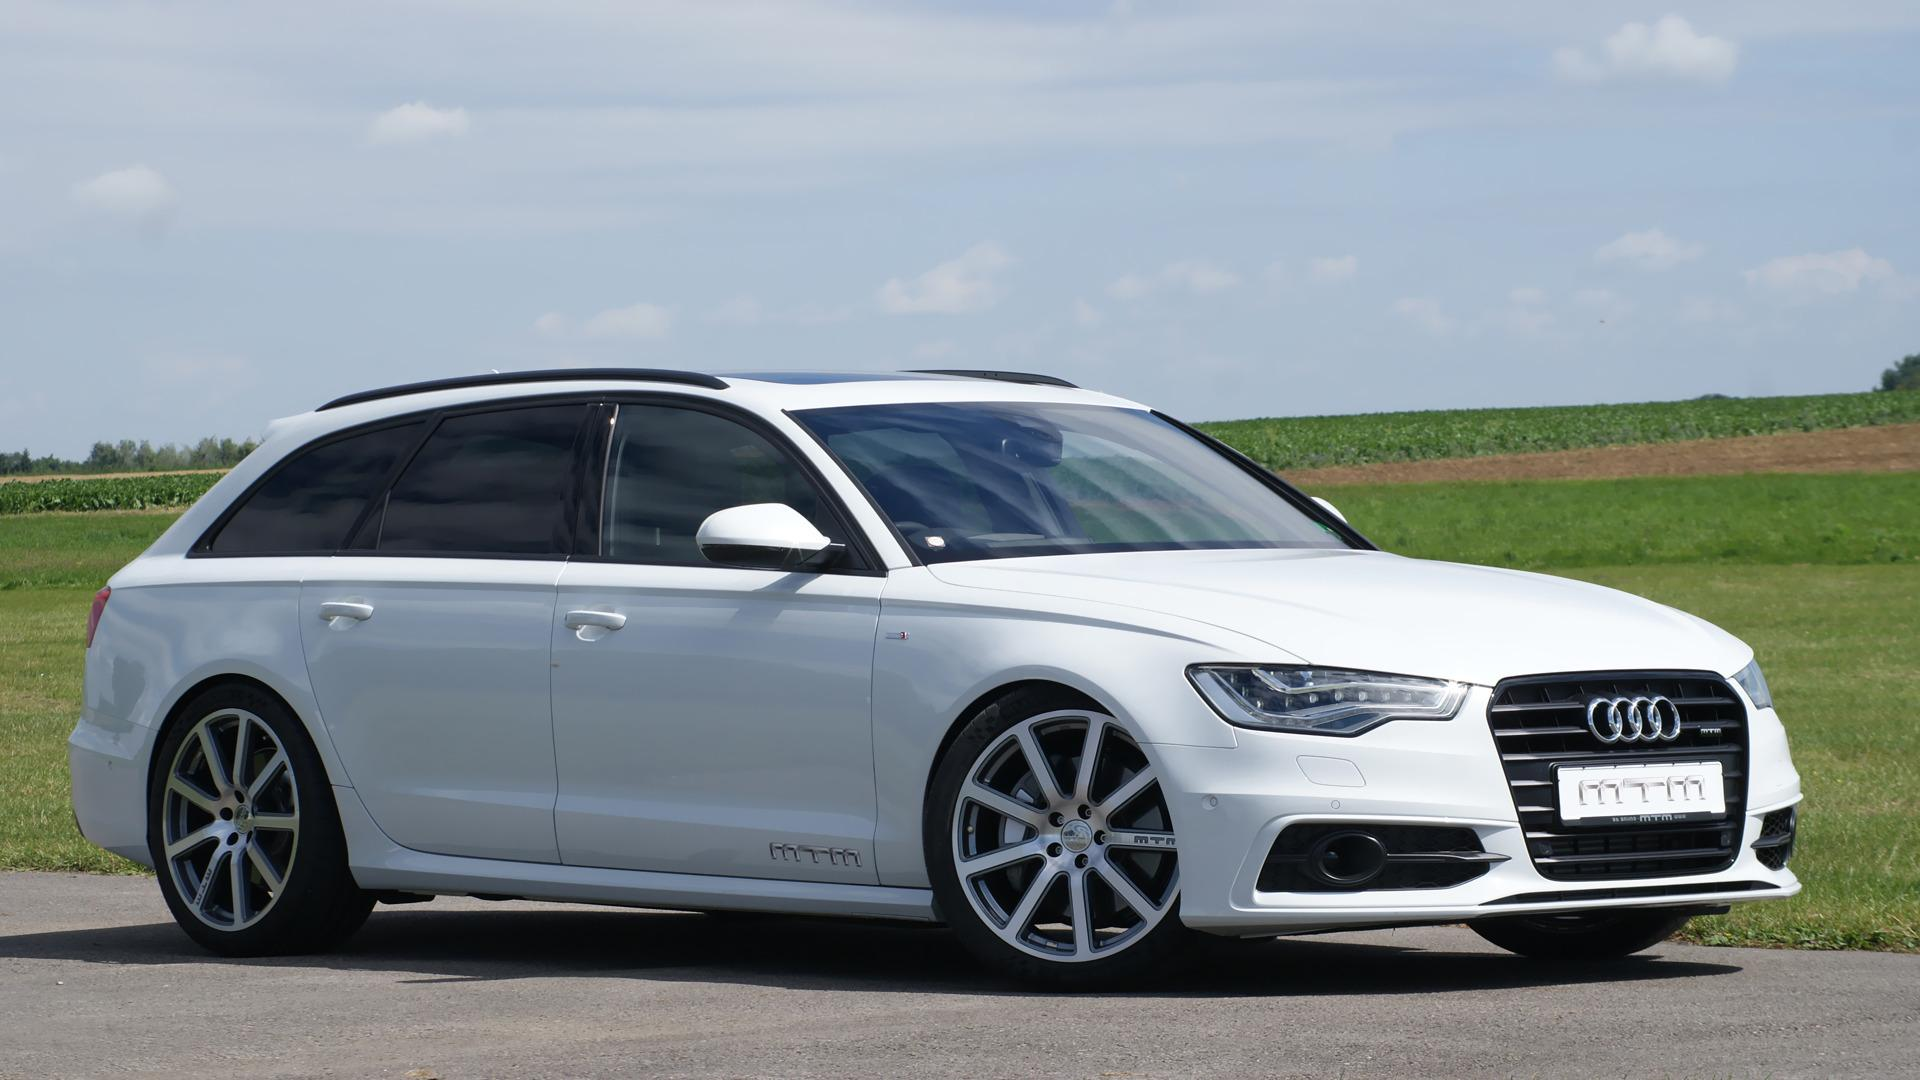 Audi A6 Wallpapers